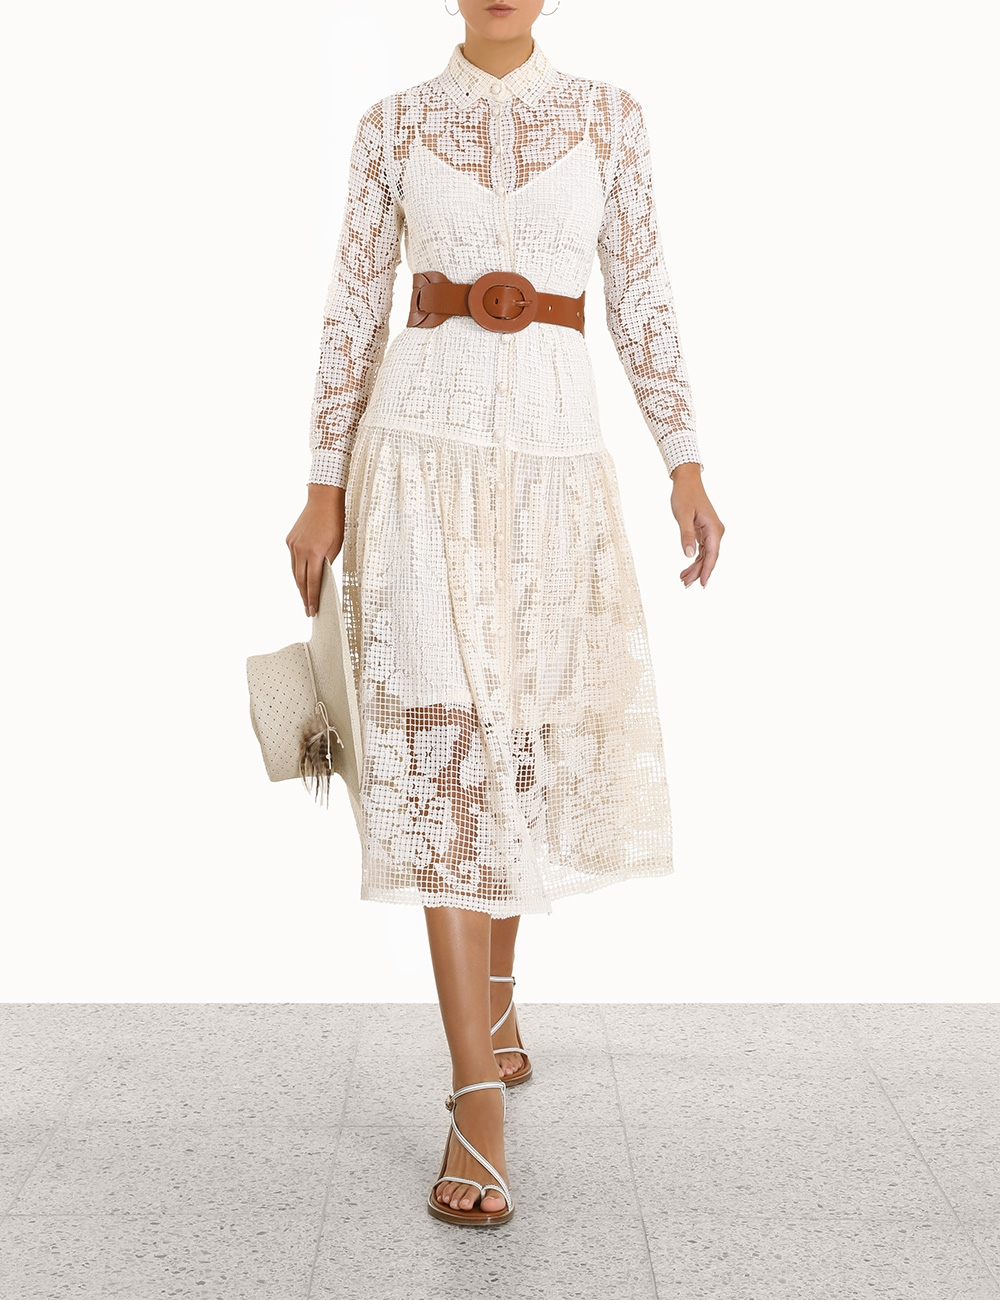 Estelle Crochet Long Dress